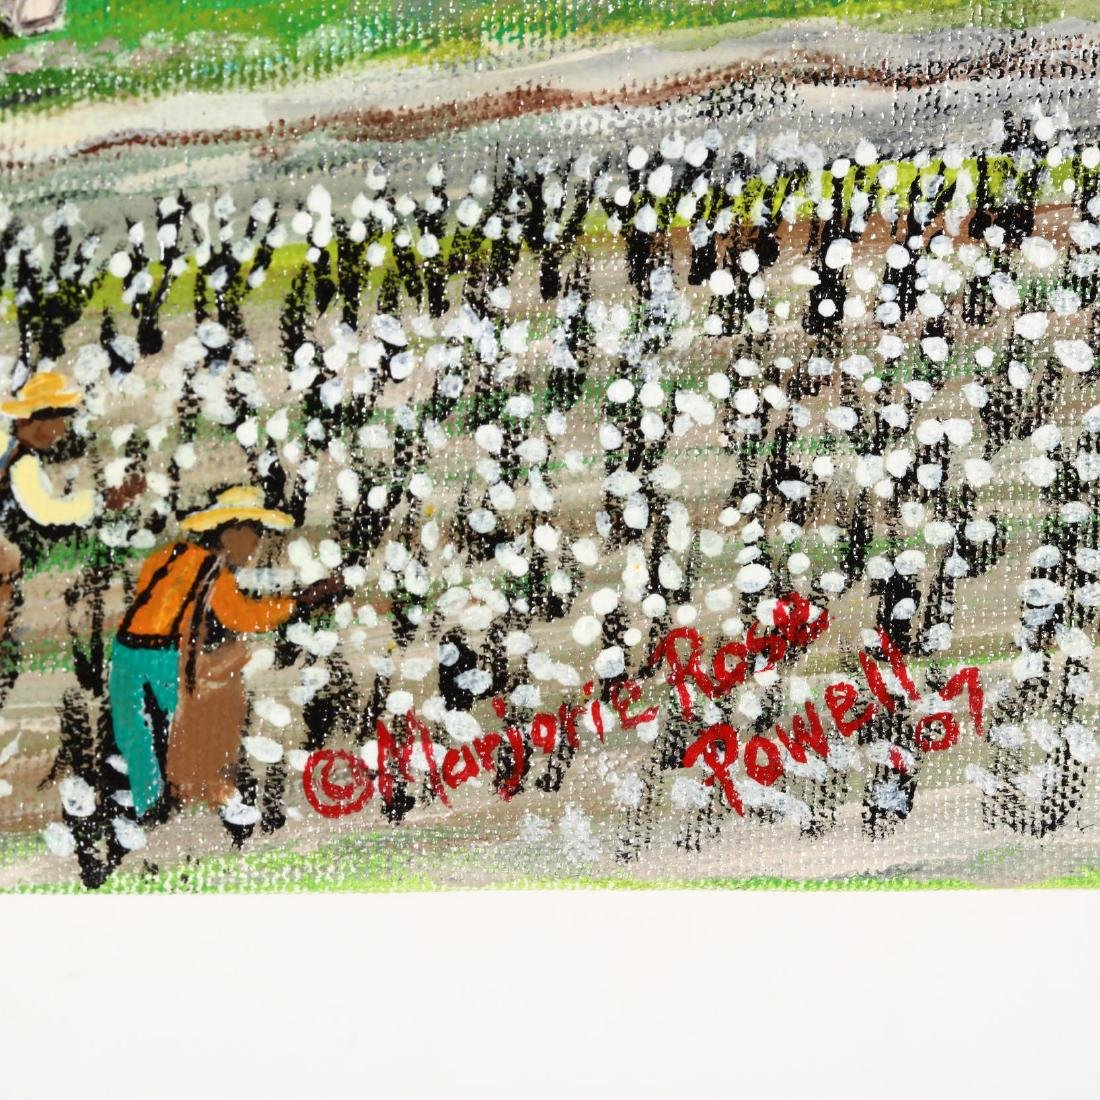 Marjorie Rose Powell (NC, 1951-2018), Cotton Picking - 2